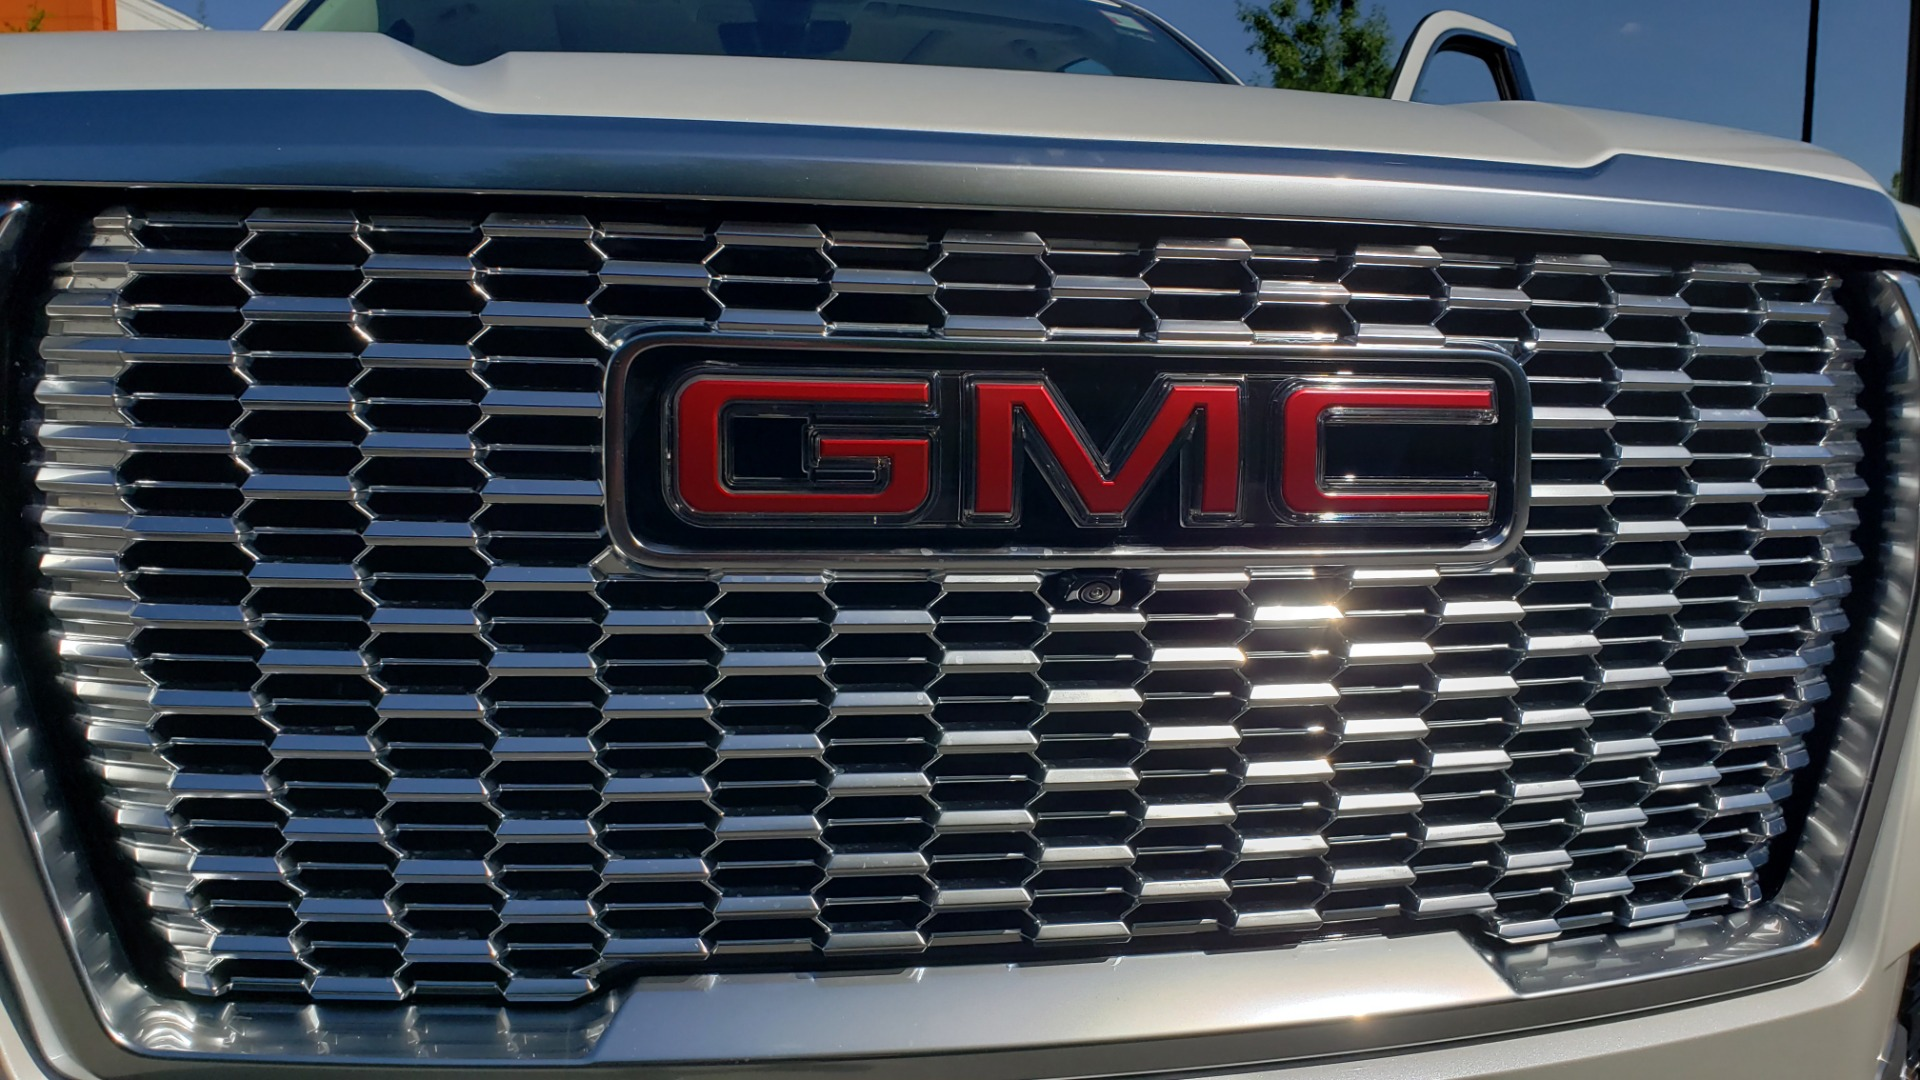 Used 2021 GMC YUKON DENALI PREM / 4WD / NAV / TECH / TRAILER / SECURITY / SUNROOF for sale Sold at Formula Imports in Charlotte NC 28227 78